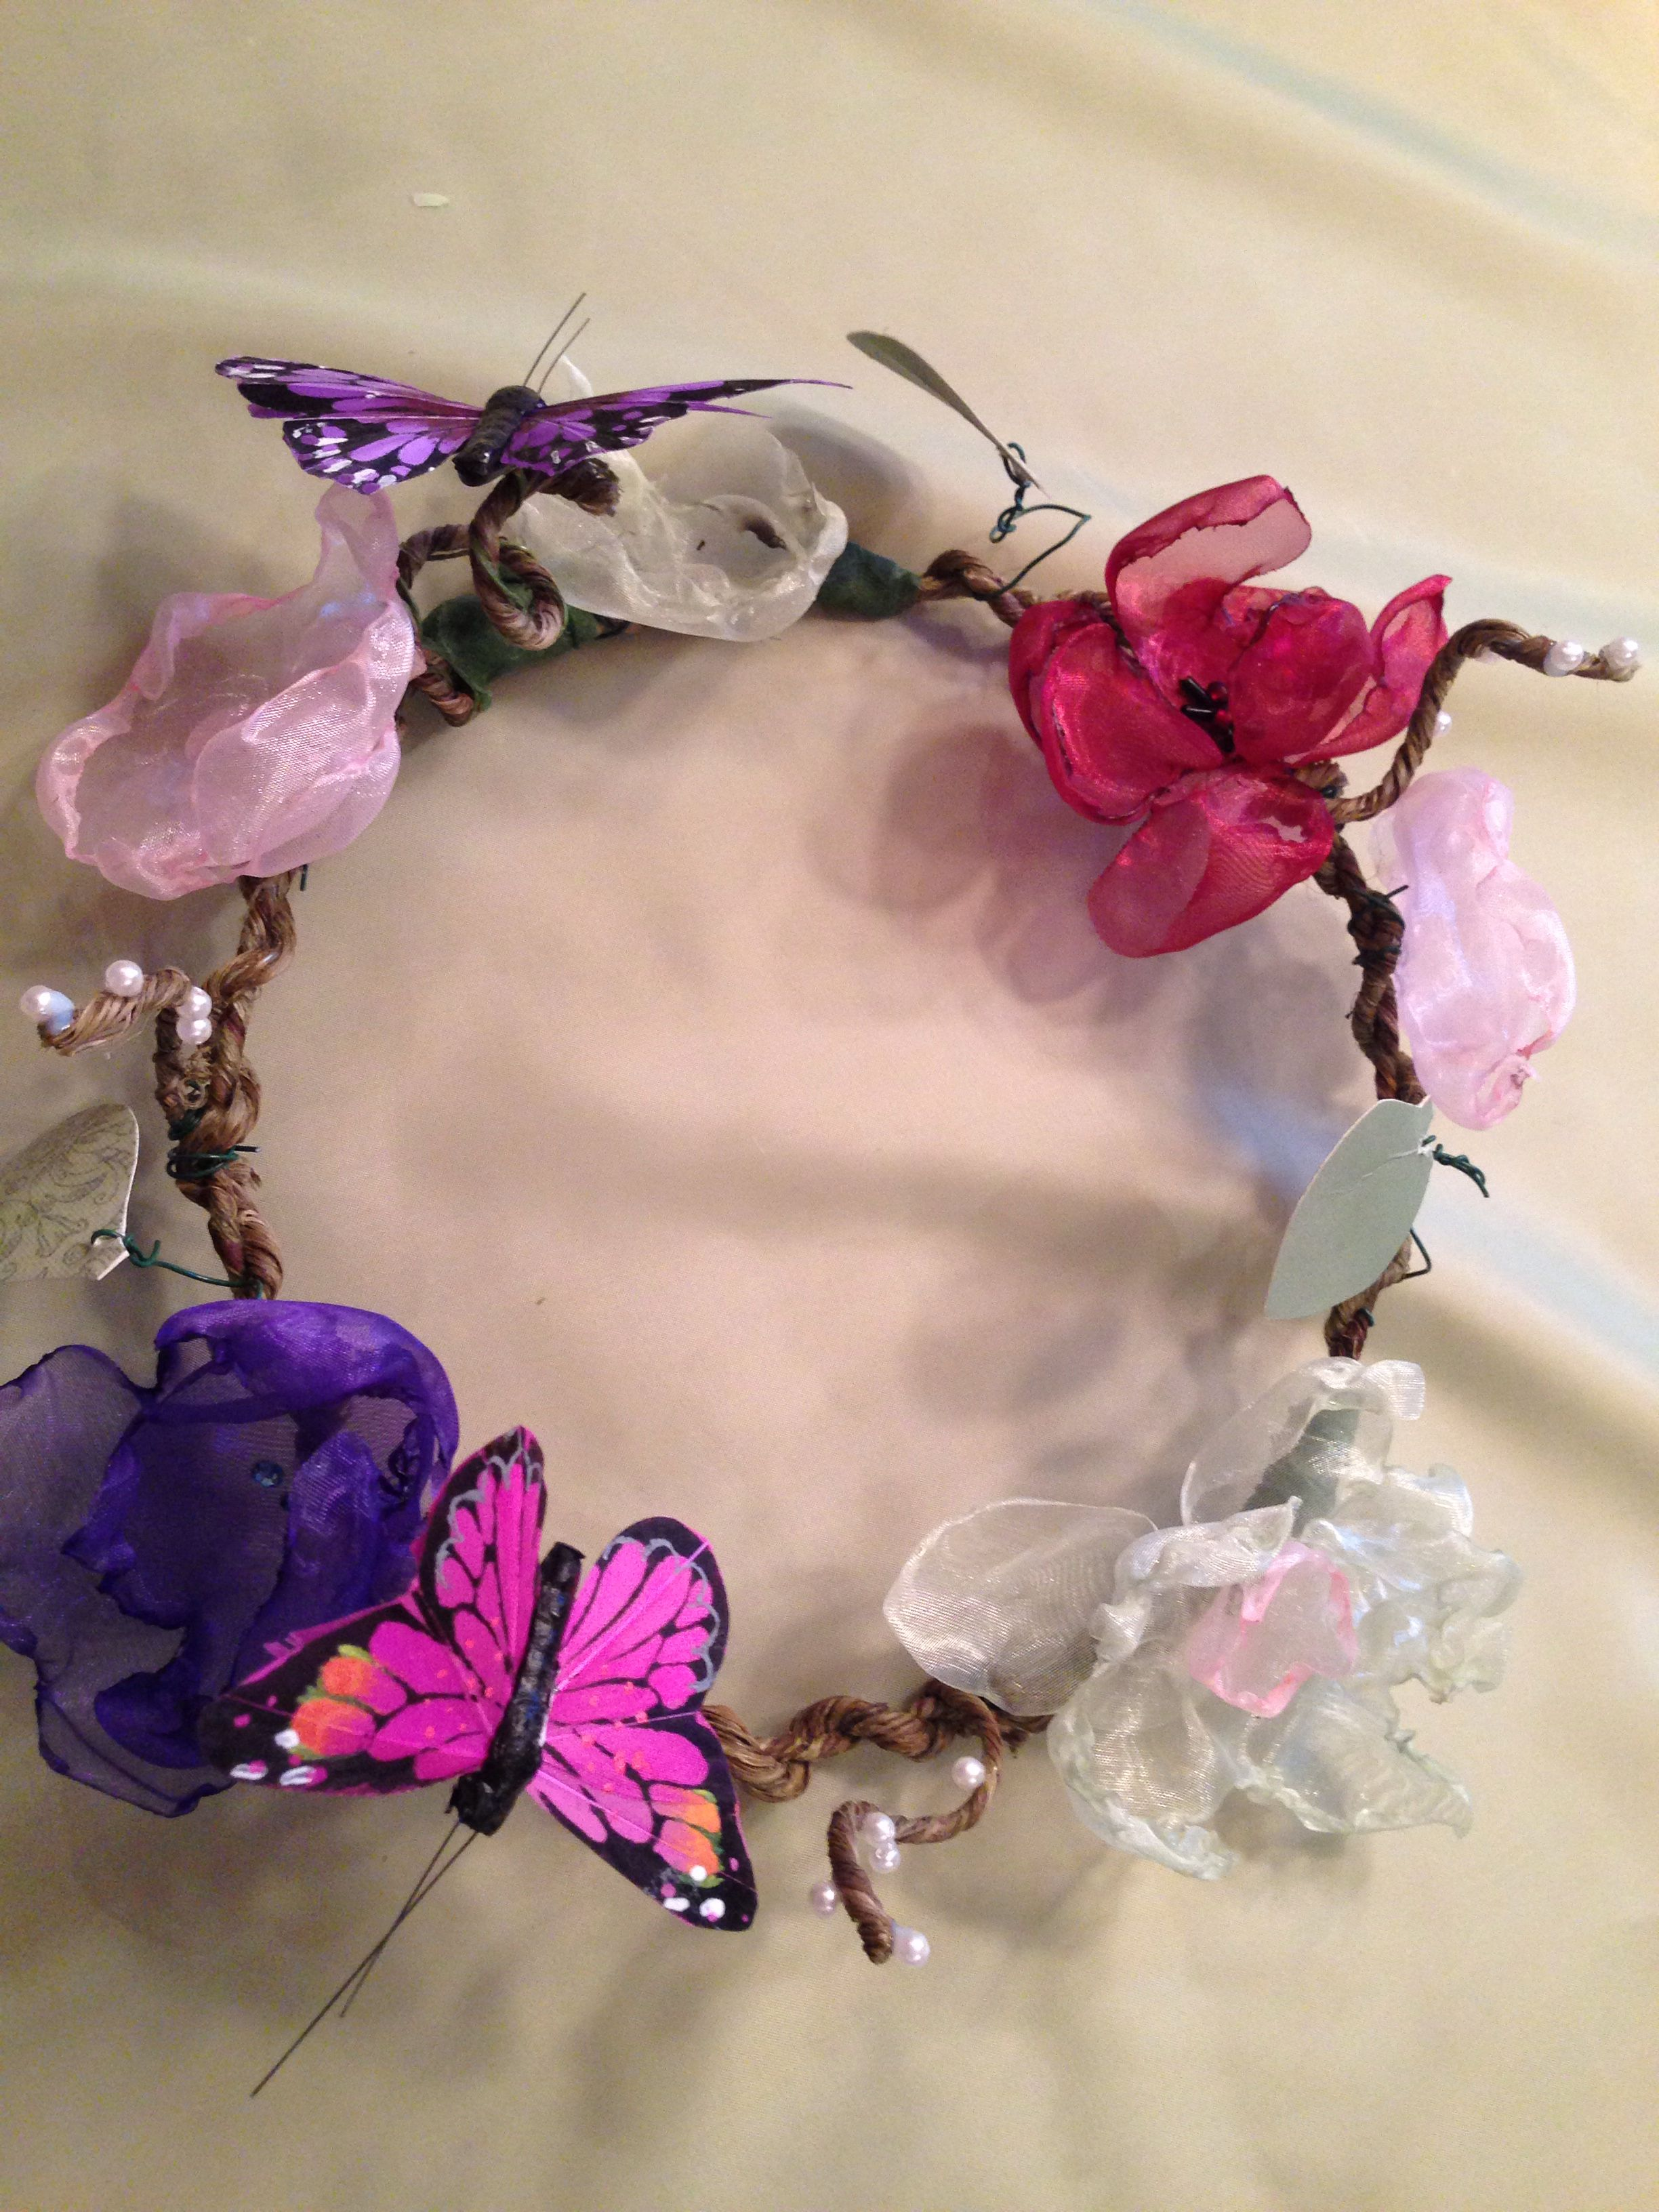 Cute Flower Crown I Made It With Fabric Flowers Floral Wrap Wire